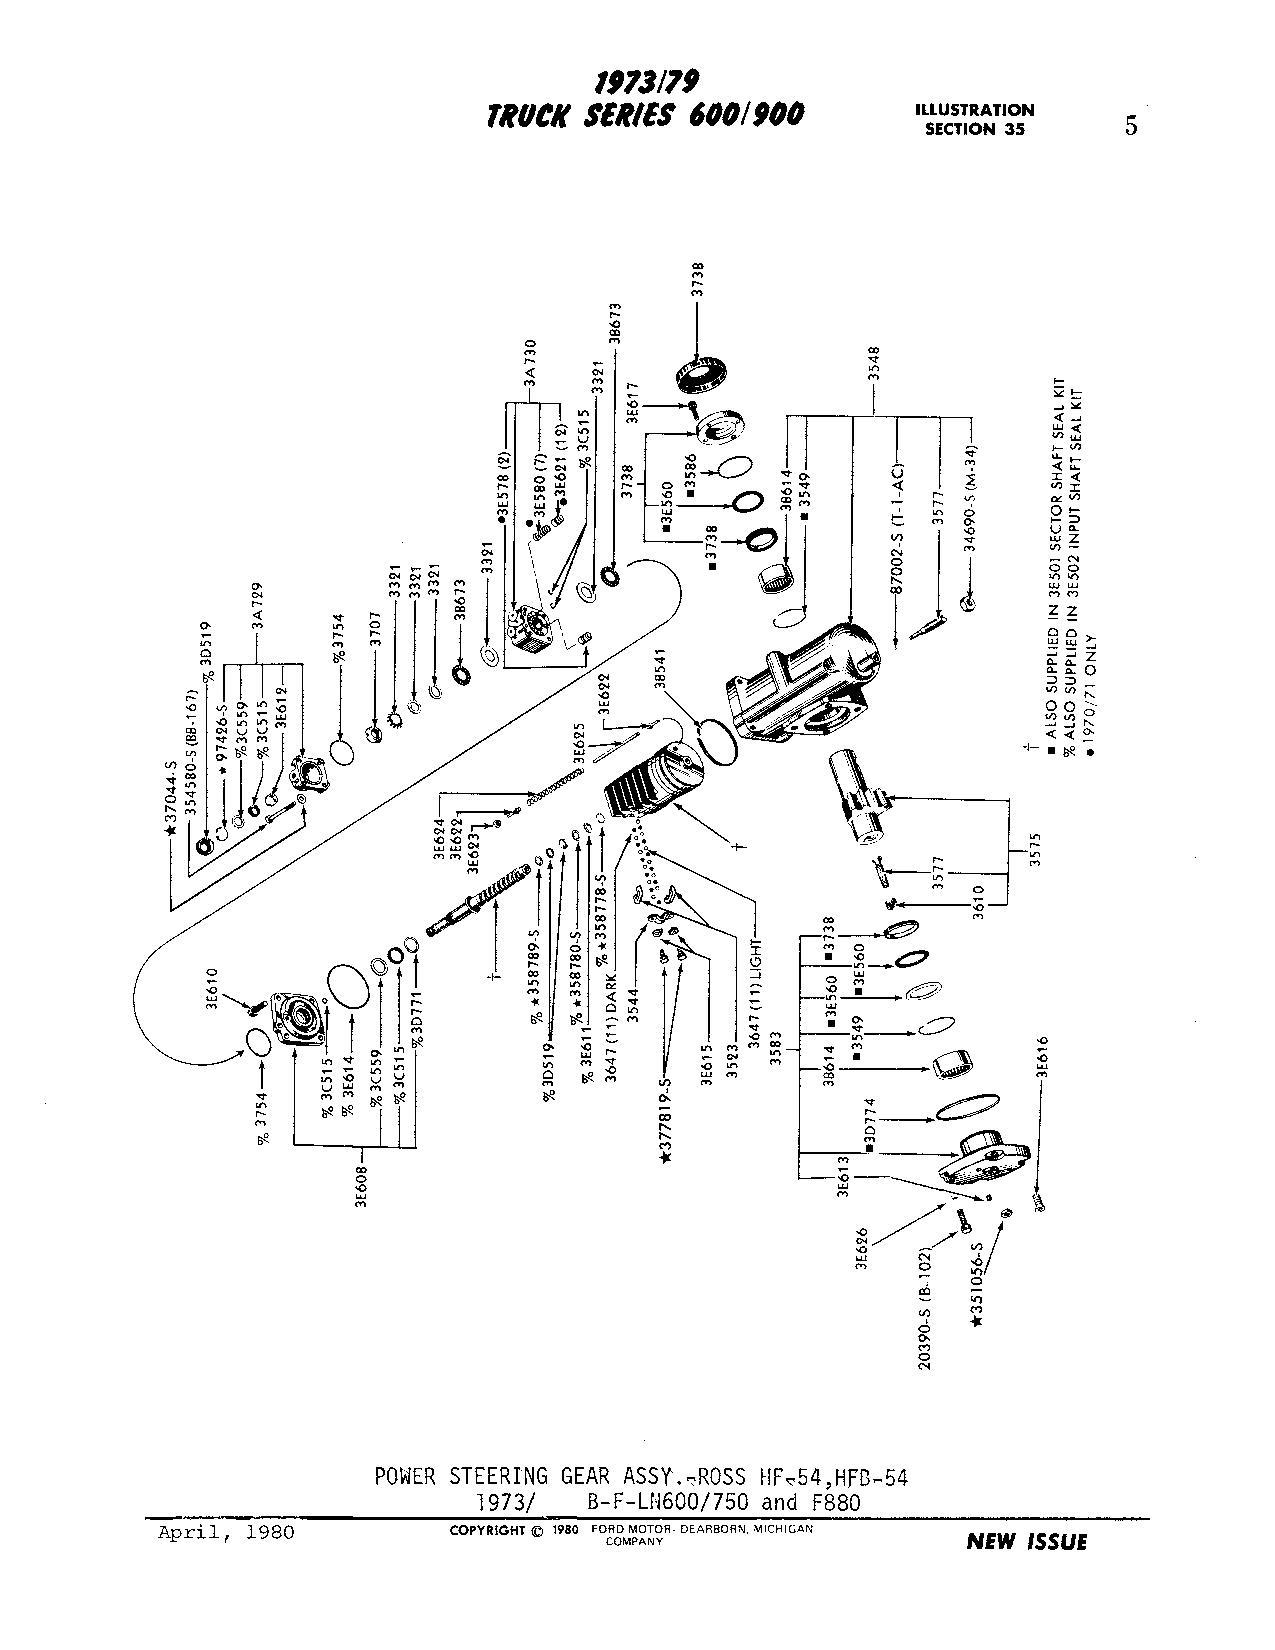 2 Speed Rear Axle Wiring Diagram